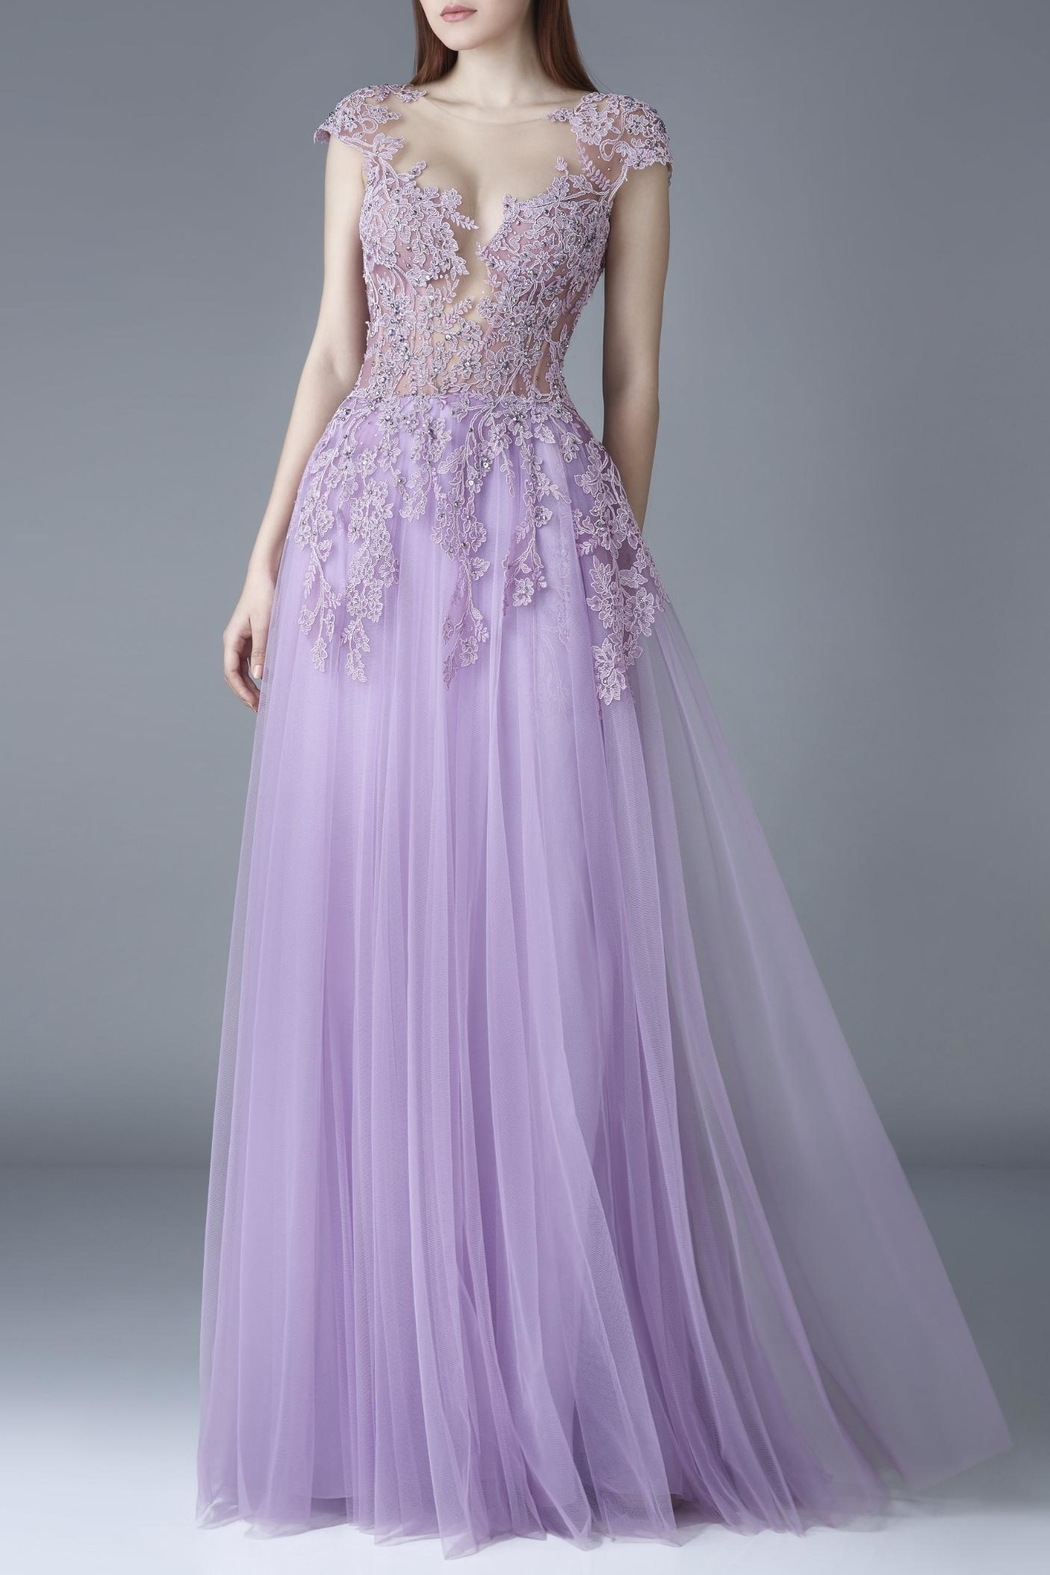 Gemy Maalouf Cap Sleeve Gown - Main Image